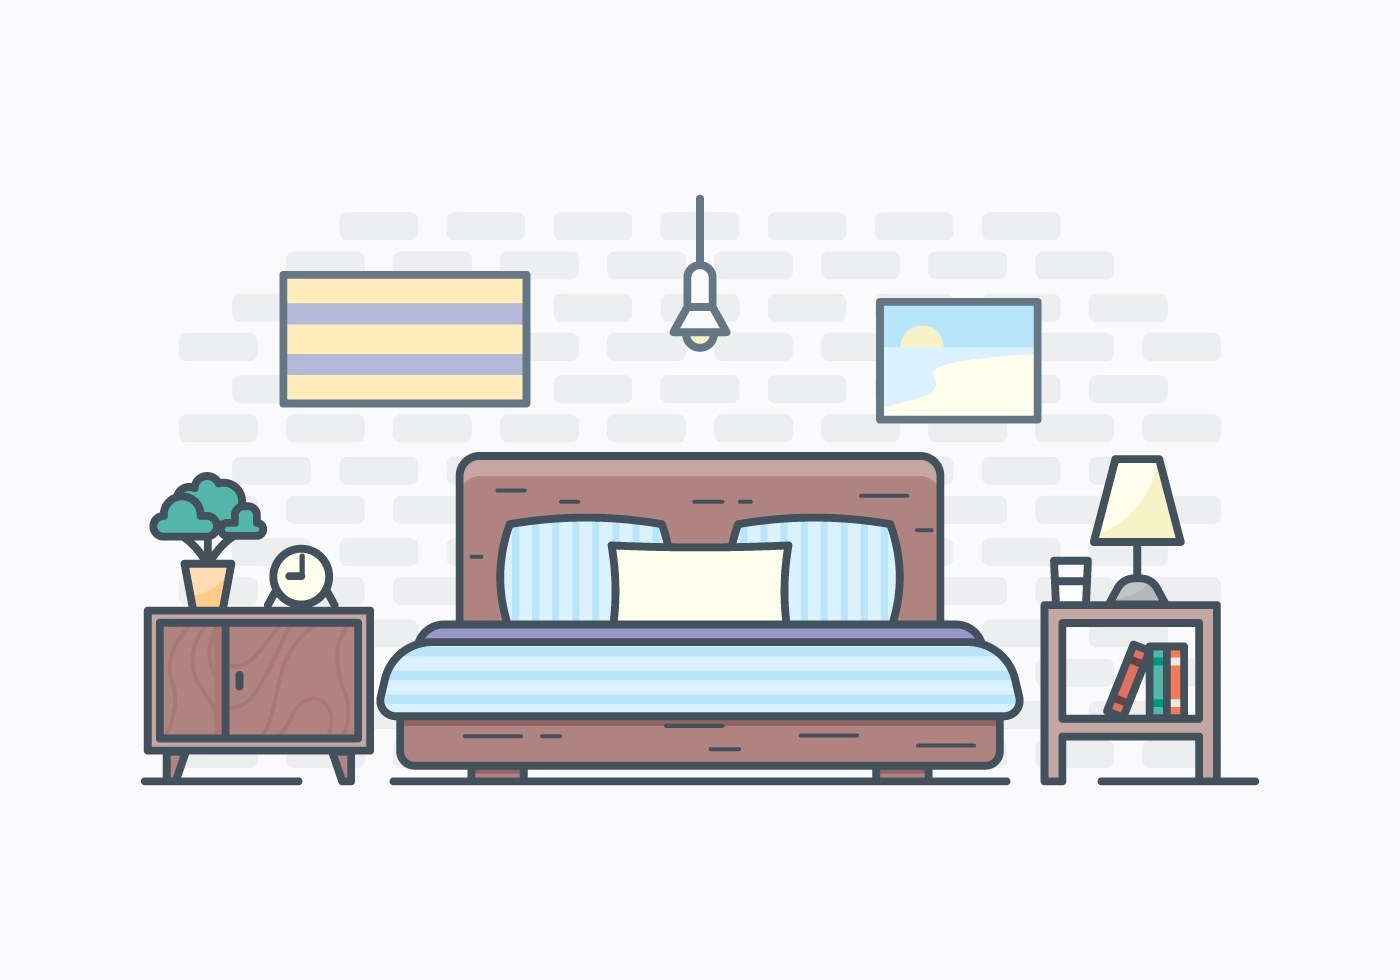 Simple Bed Free Simple Bedroom Illustration Download Free Vector Art Stock